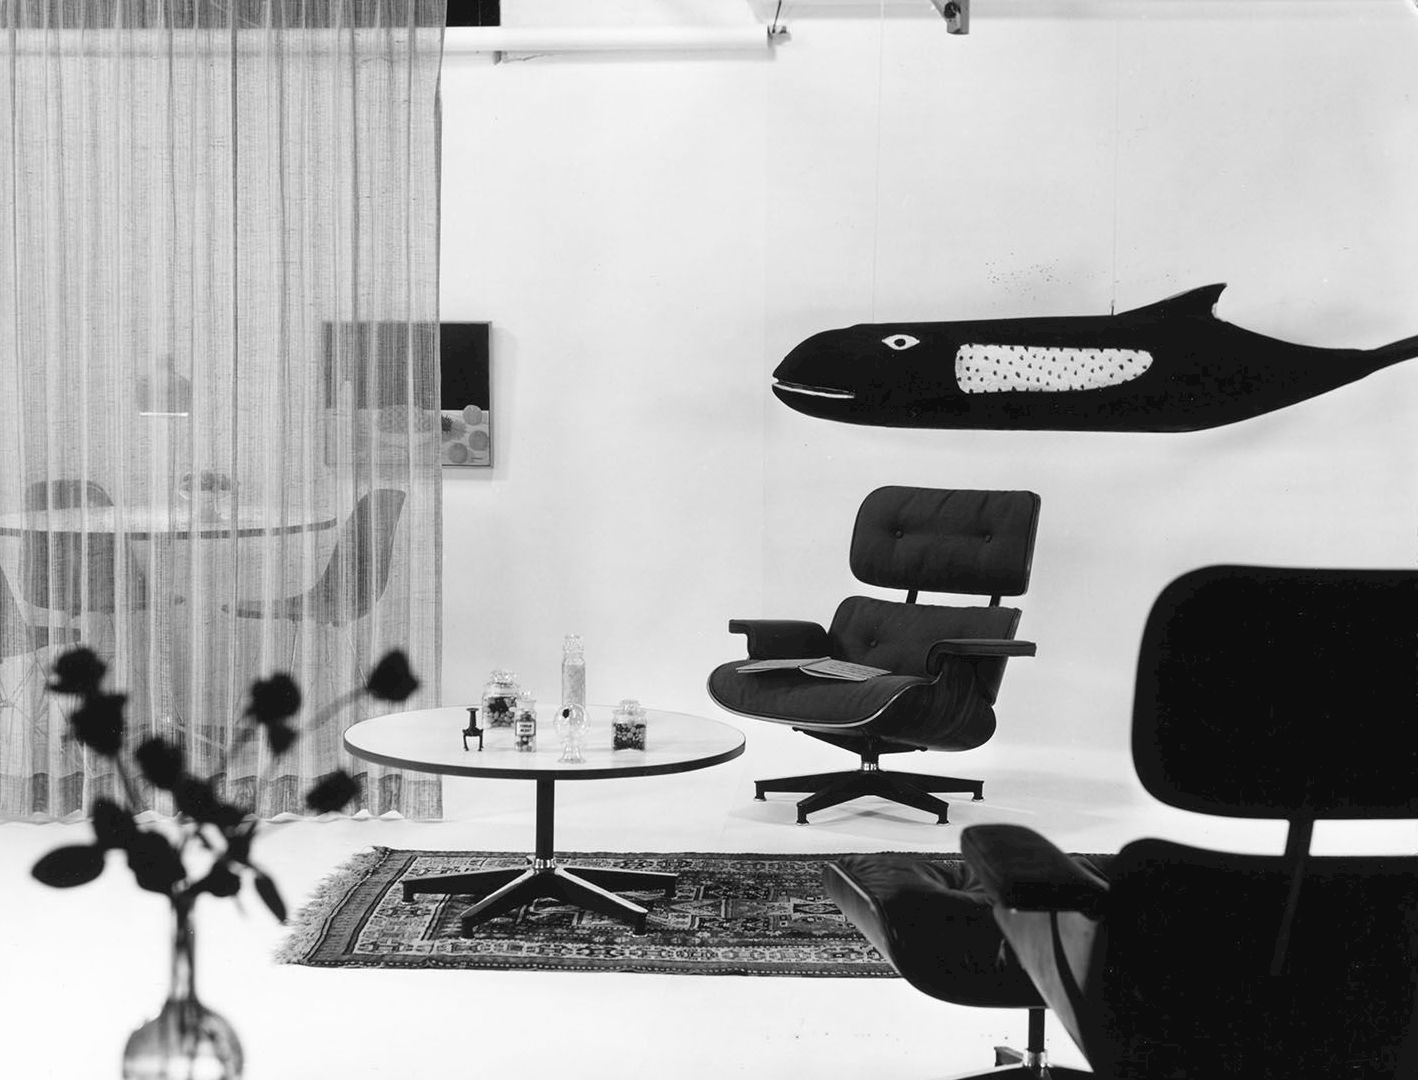 Vitra Eames Lounge Chair Vitra An Eames Lounge Chair In Fabric Really